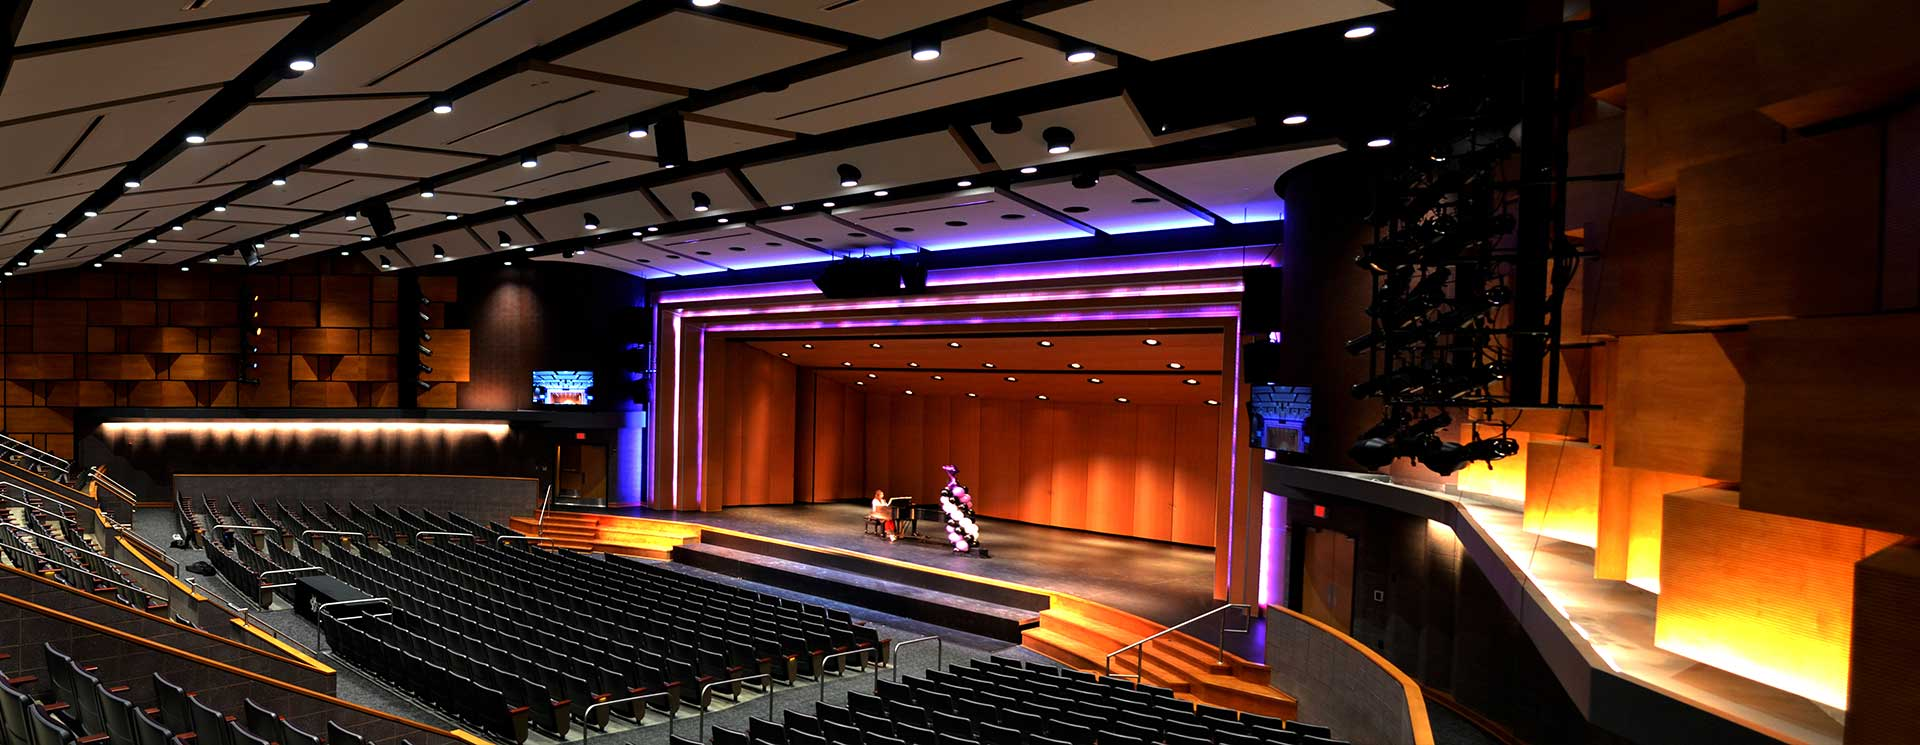 Welcome to auditorium designs